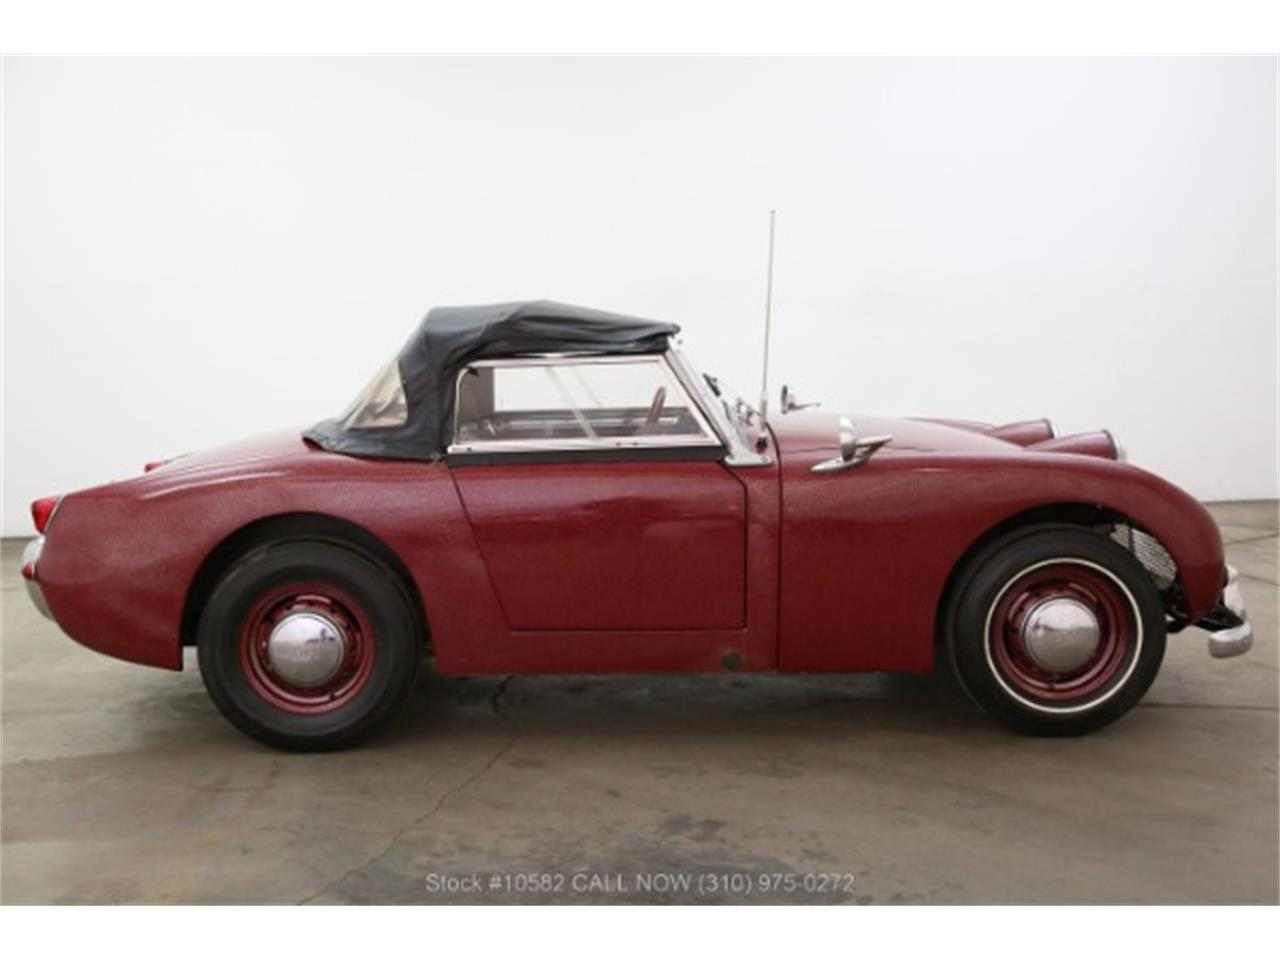 Large Picture of '60 Bugeye Sprite located in Beverly Hills California - $9,750.00 Offered by Beverly Hills Car Club - PKL4